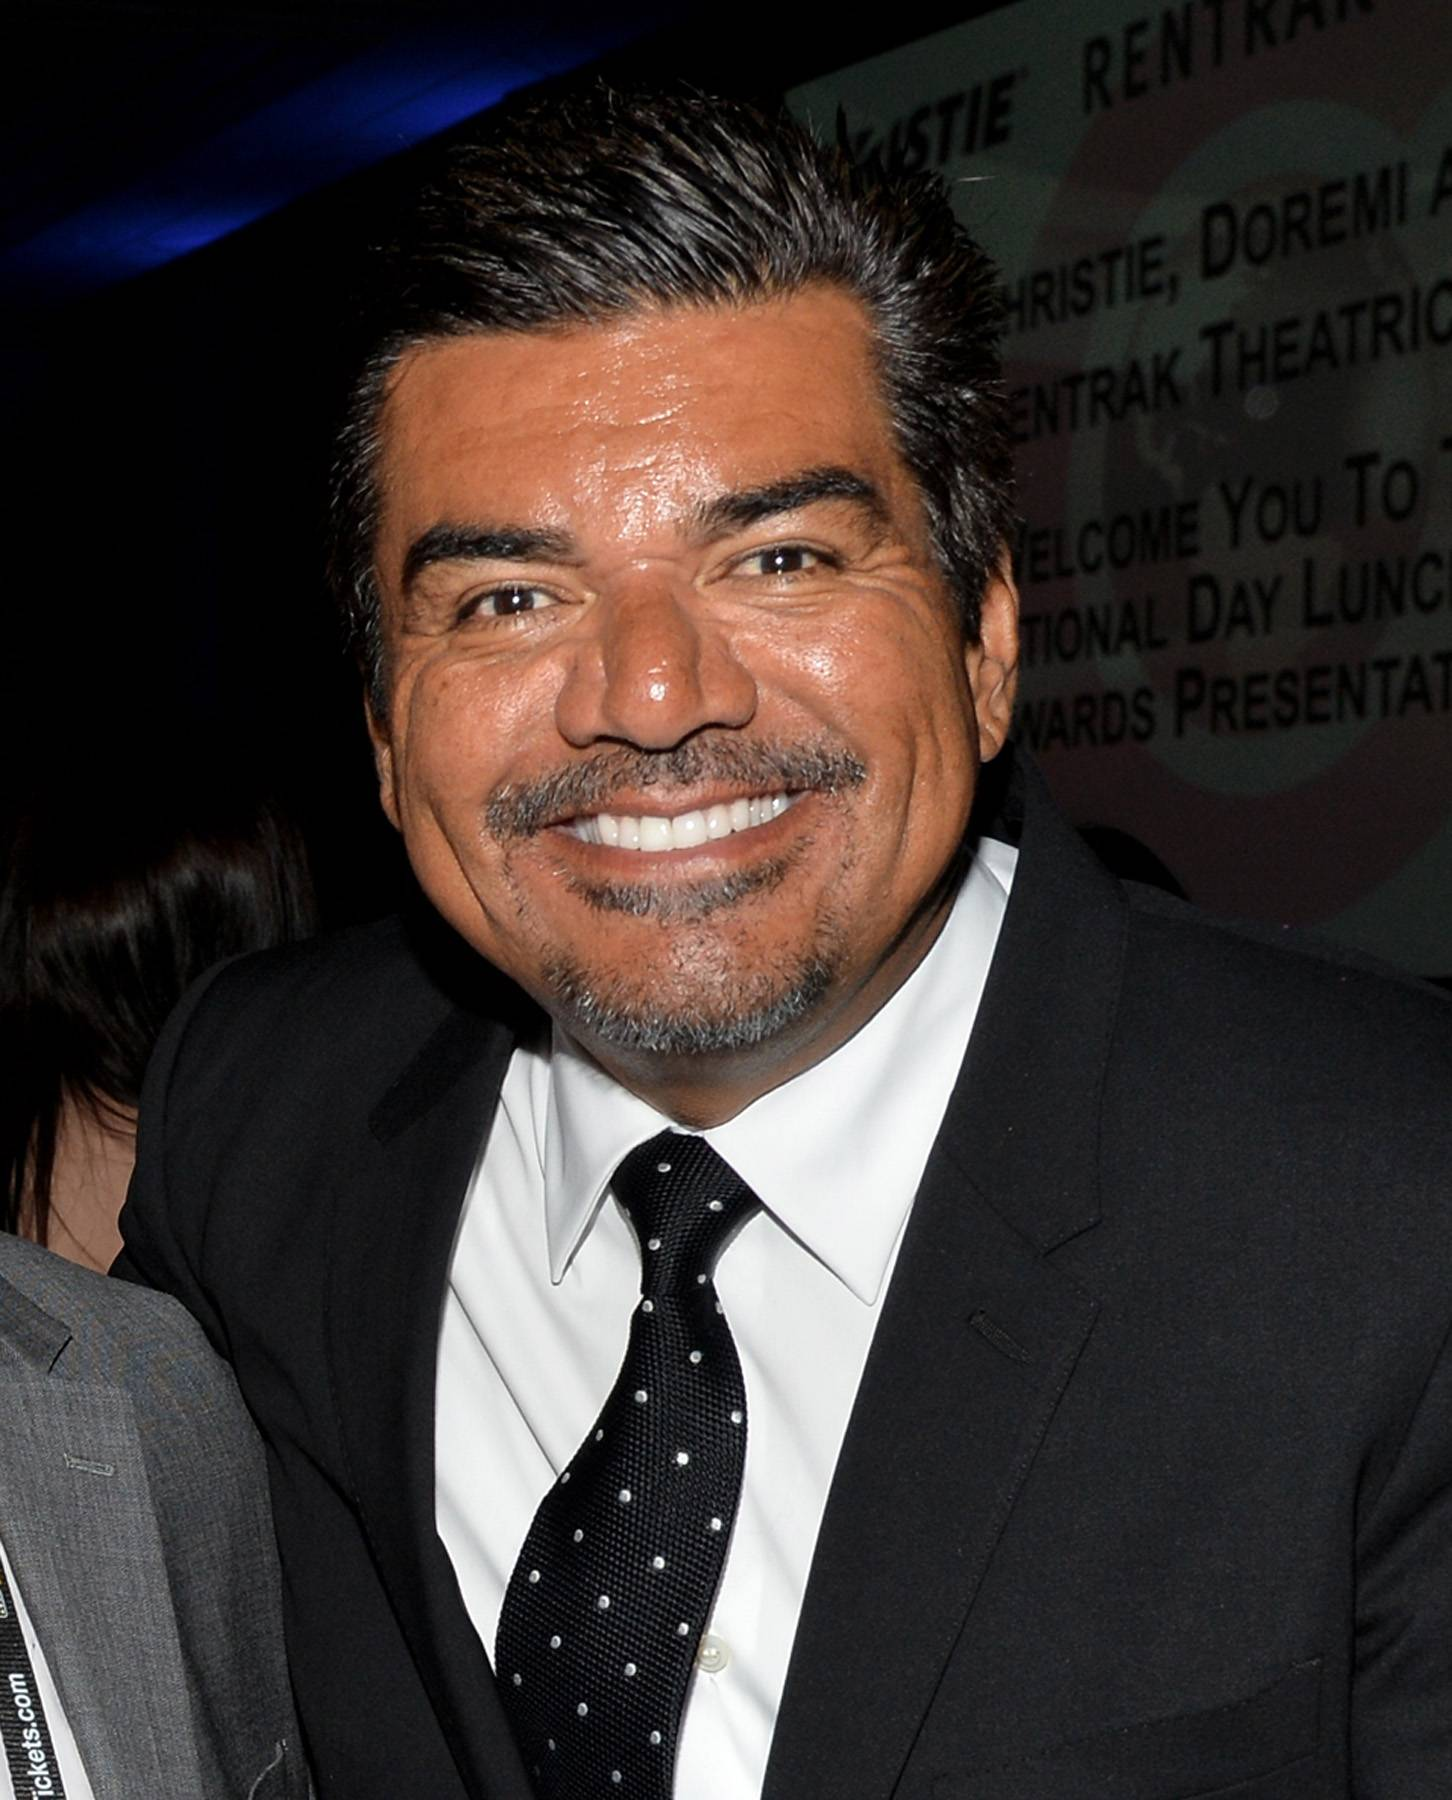 7. He Advocates Voting - Lopez was a vocal advocate during President Obama's re-election campaign in 2012. (Photo: Michael Buckner/Getty Images for CinemaCon)